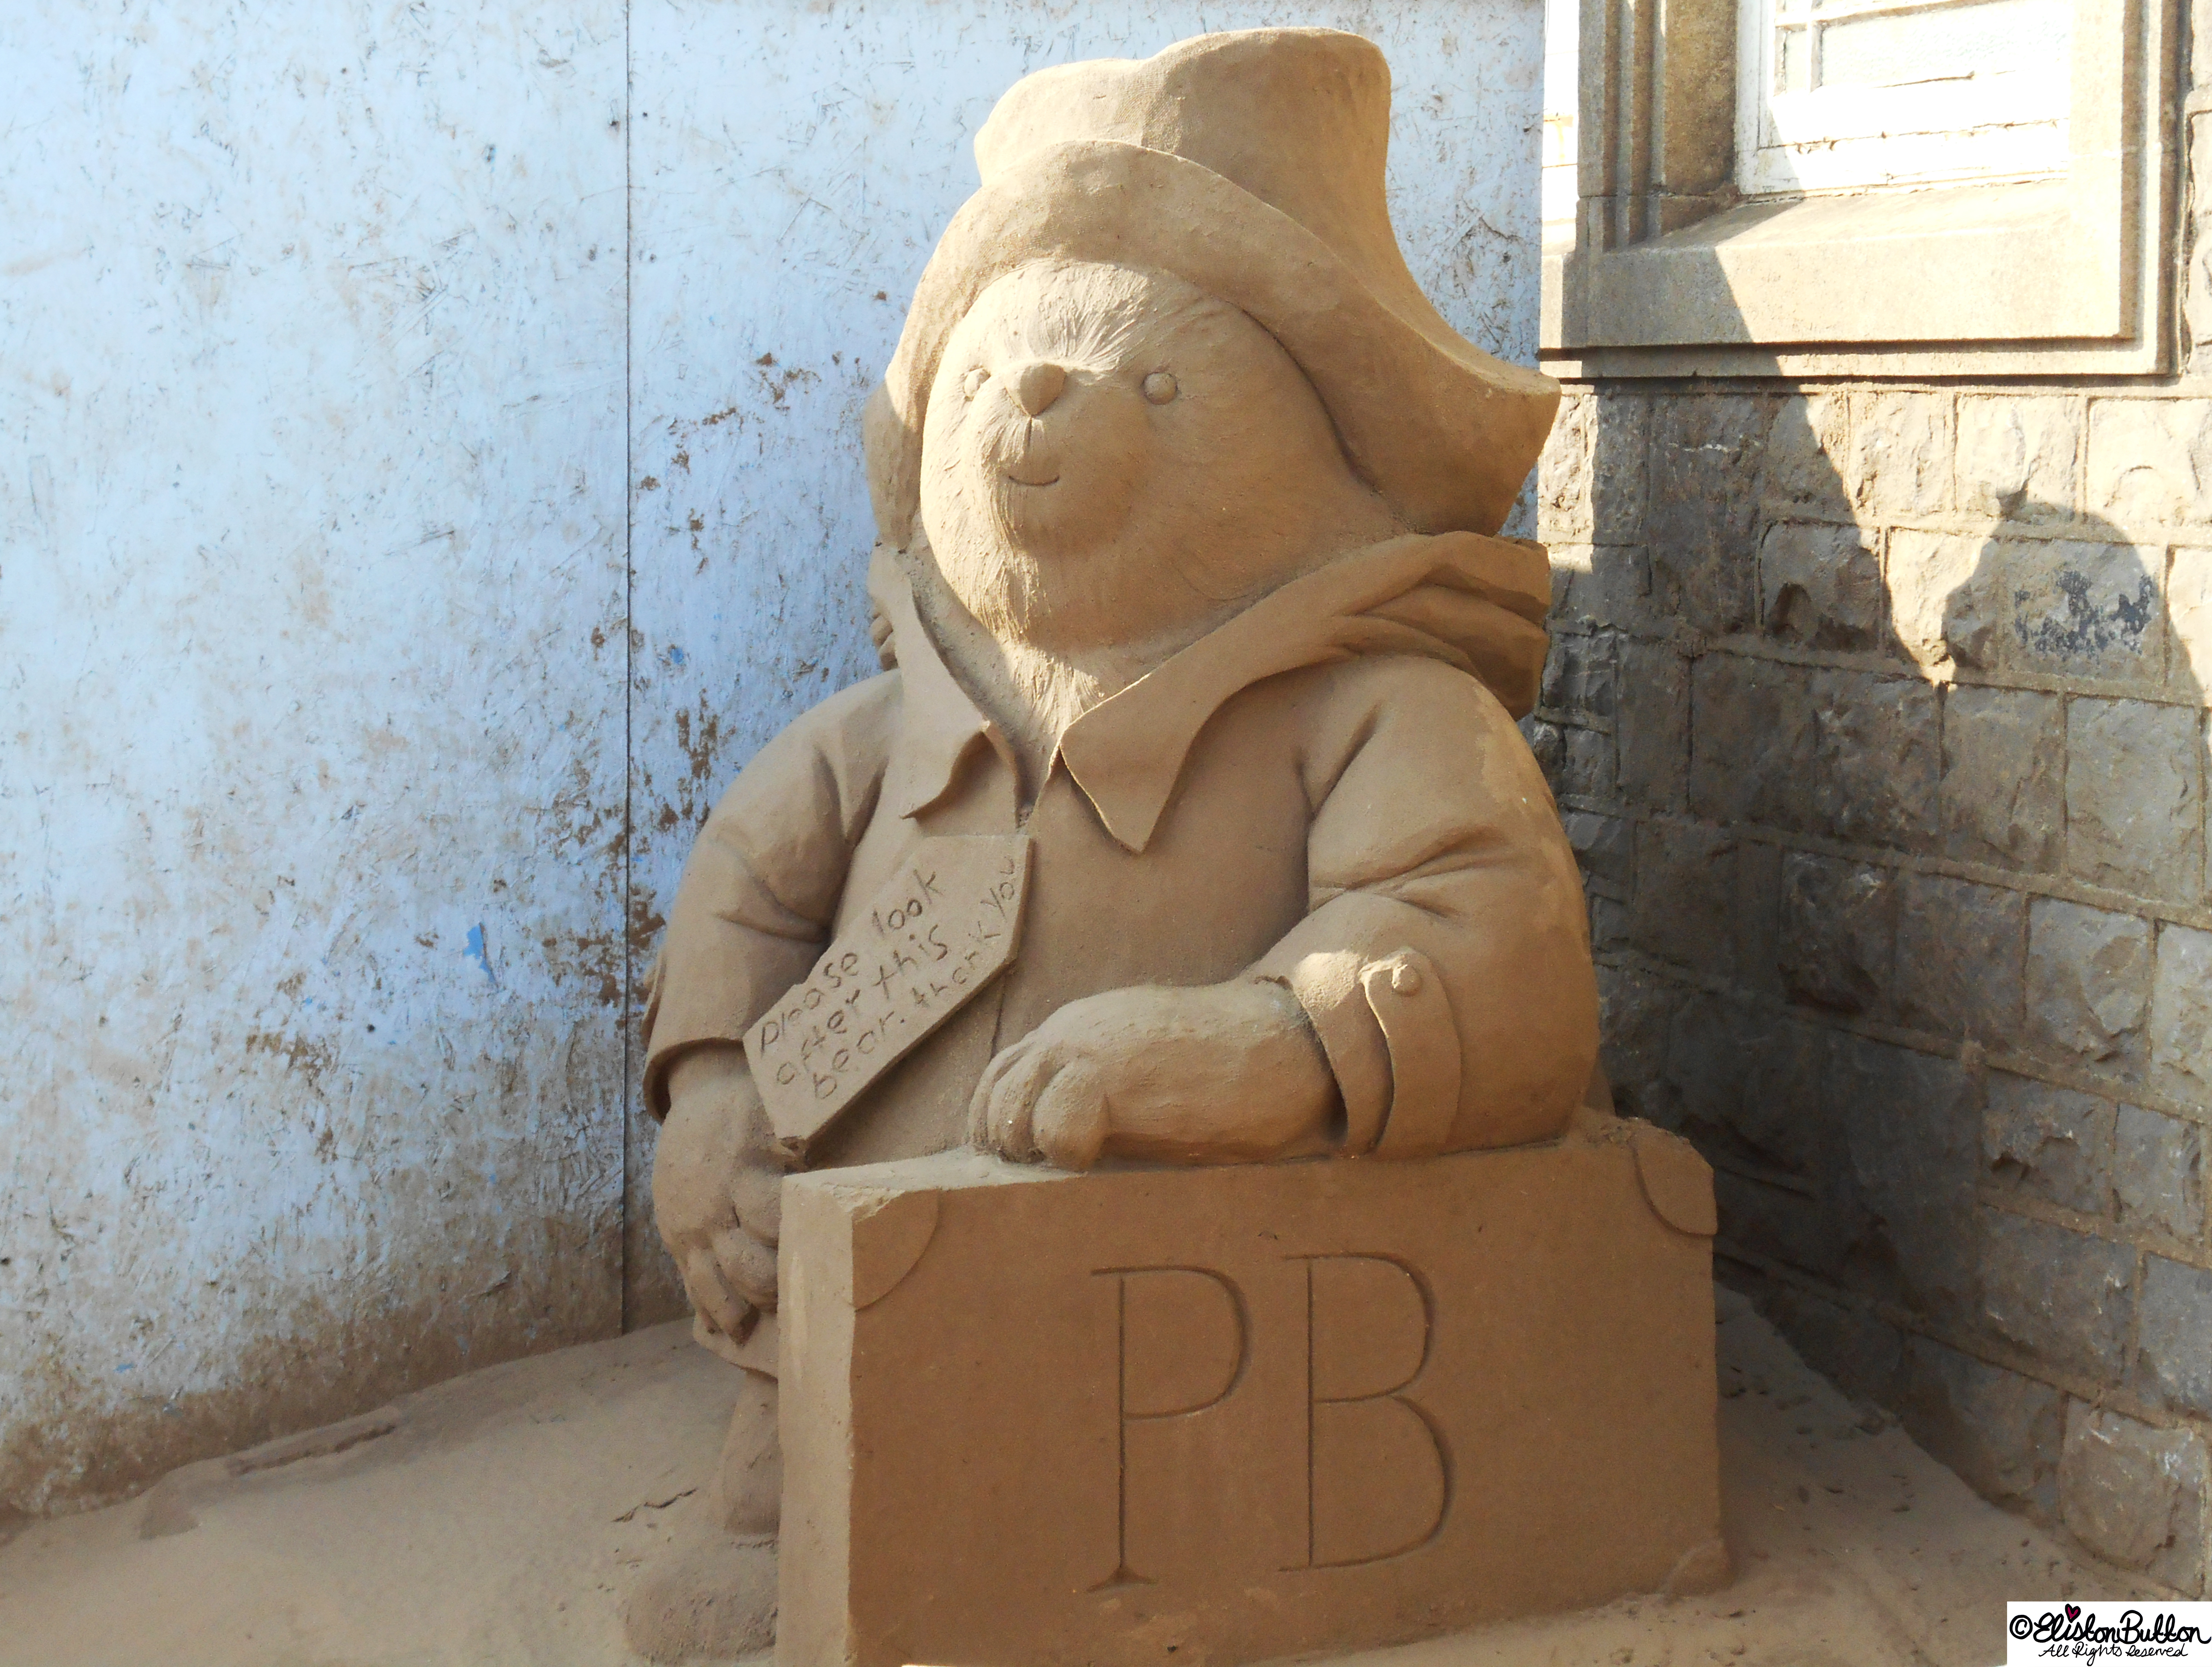 Paddington Bear Sand Sculpture - The Great British Seaside (and an Eliston Button Autumn Sale) at www.elistonbutton.com - Eliston Button - That Crafty Kid – Art, Design, Craft & Adventure.